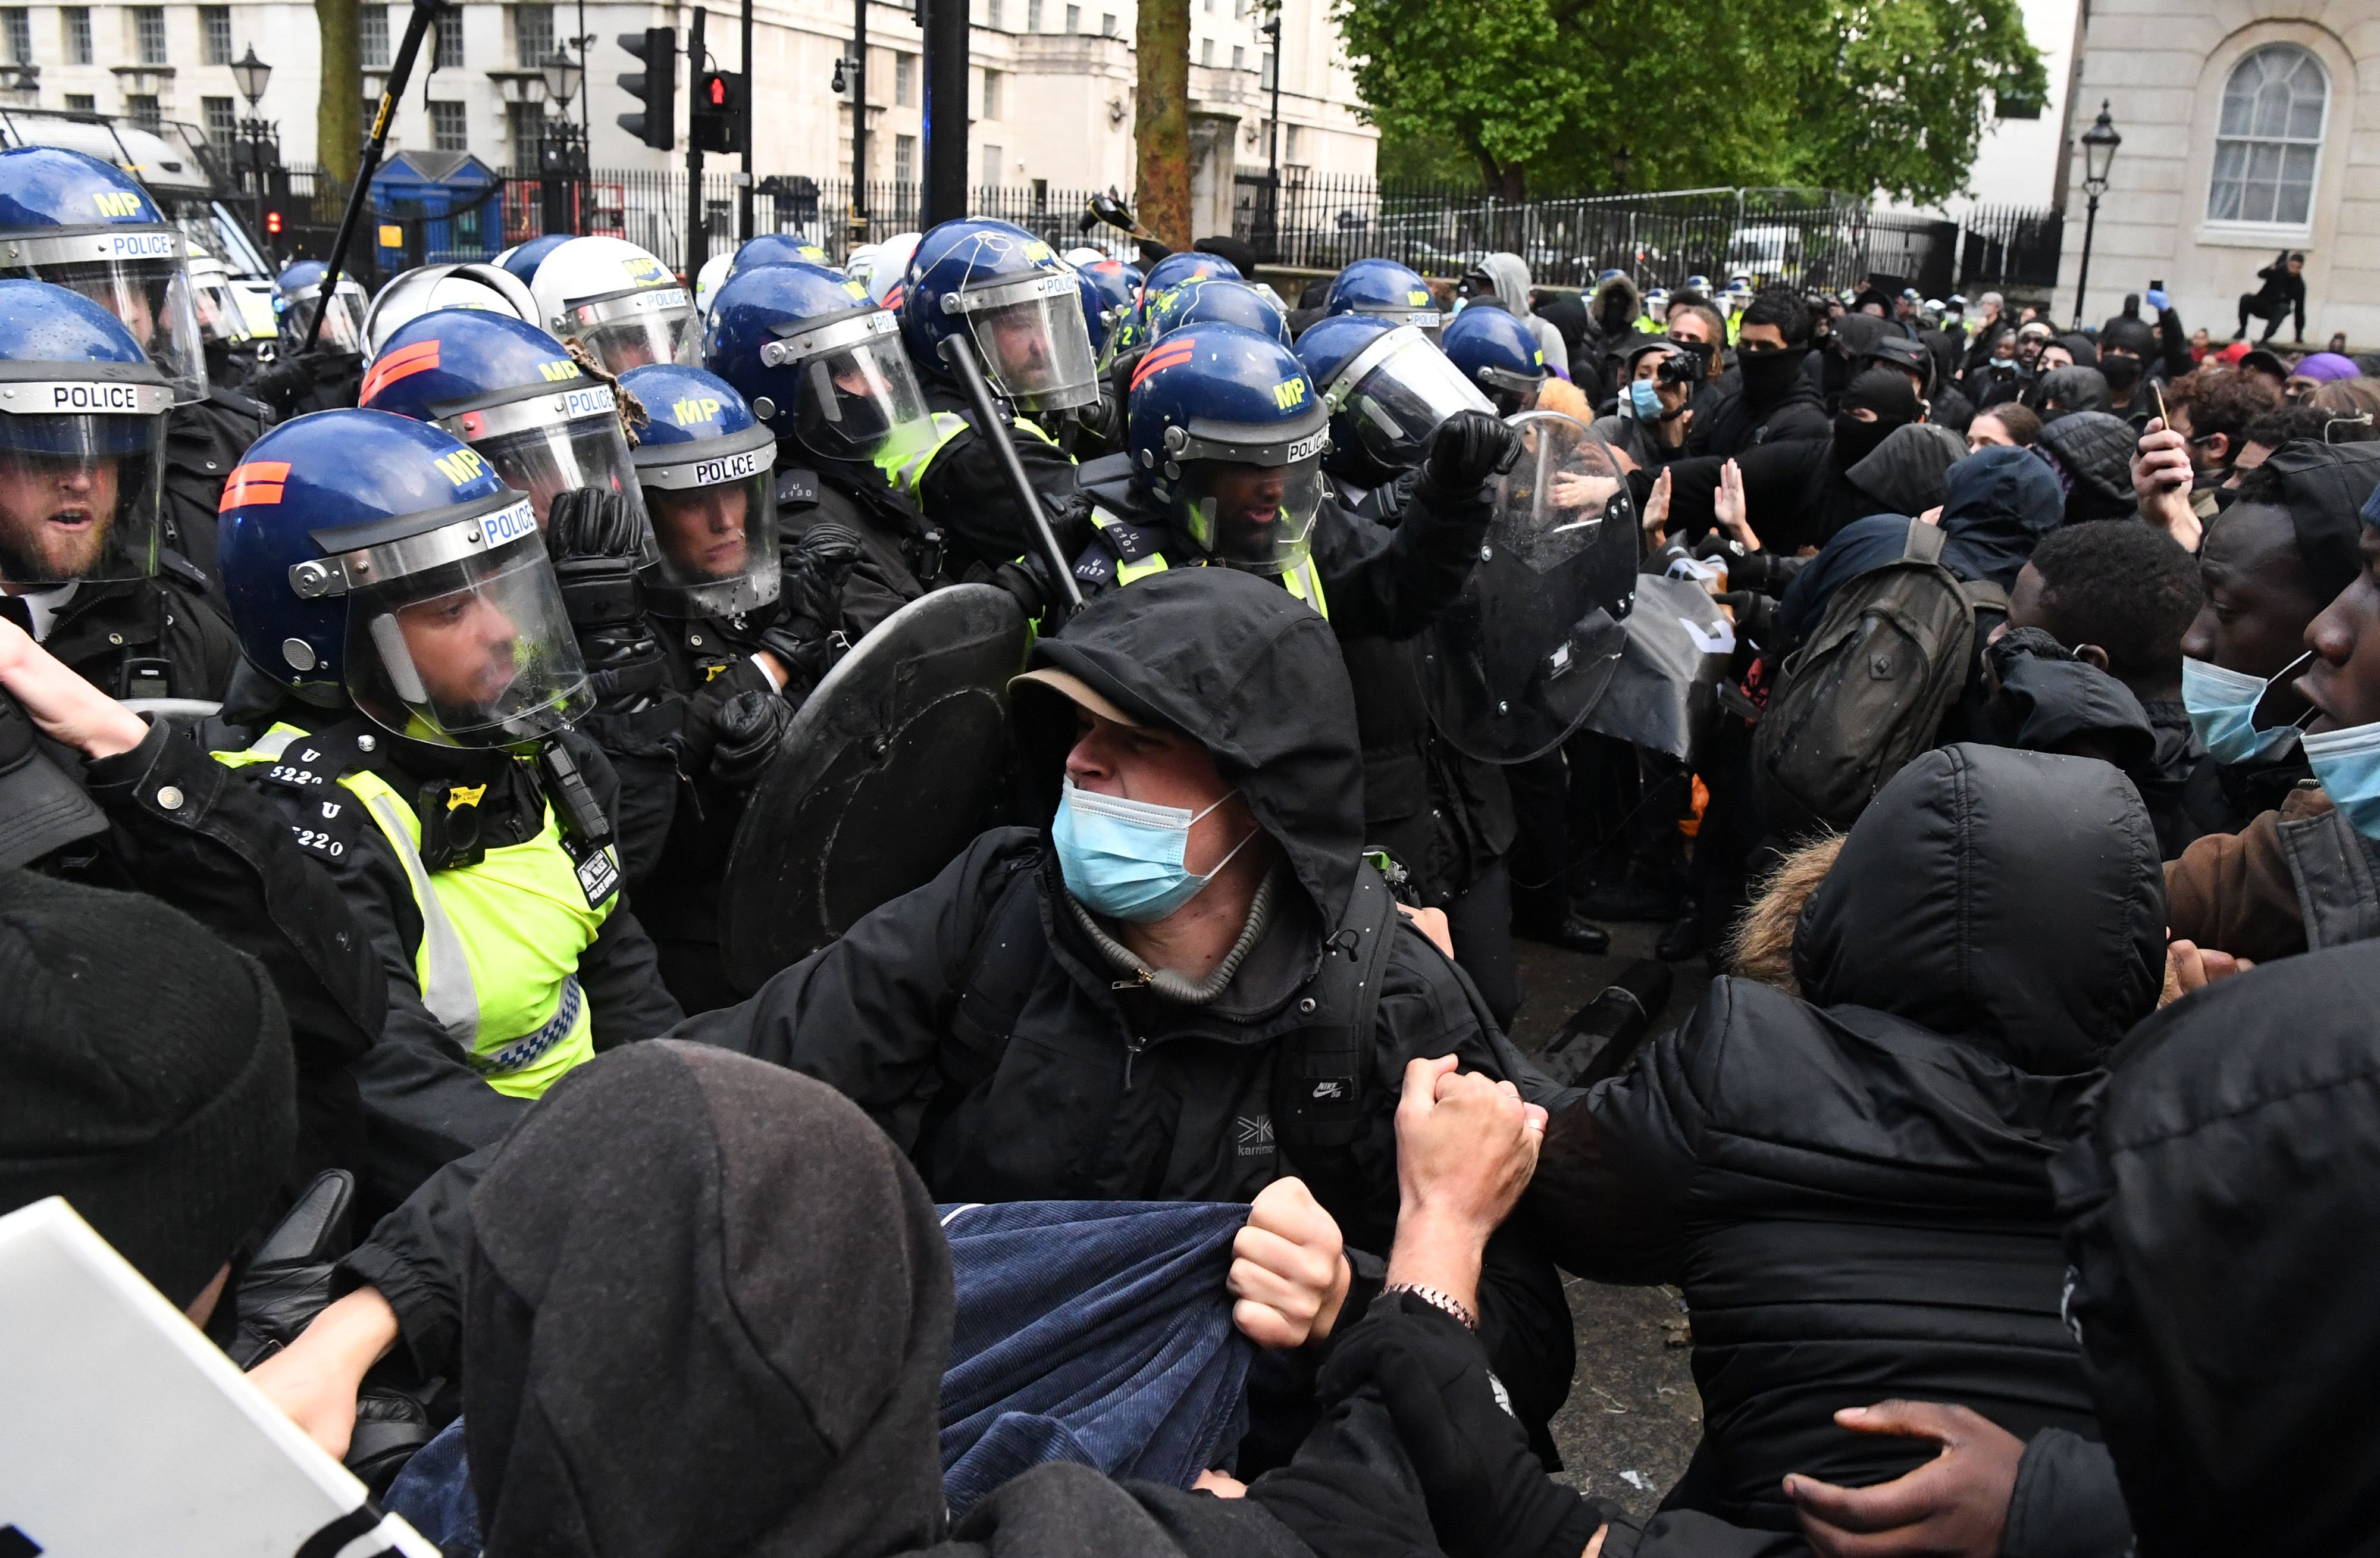 """Protestors, some wearing PPE (personal protective equipment), including a face mask as a precautionary measure against COVID-19,  scuffle with Police officers in riot gear near Downing Street, in central London on June 6, 2020, during a demonstration organised to show solidarity with the Black Lives Matter movement in the wake of the killing of George Floyd, an unarmed black man who died after a police officer knelt on his neck in Minneapolis. - The United States braced Friday for massive weekend protests against racism and police brutality, as outrage soared over the latest law enforcement abuses against demonstrators that were caught on camera. With protests over last week's police killing of George Floyd, an unarmed black man, surging into a second weekend, President Donald Trump sparked fresh controversy by saying it was a """"great day"""" for Floyd. (Photo by DANIEL LEAL-OLIVAS / AFP) (Photo by DANIEL LEAL-OLIVAS/AFP via Getty Images)"""